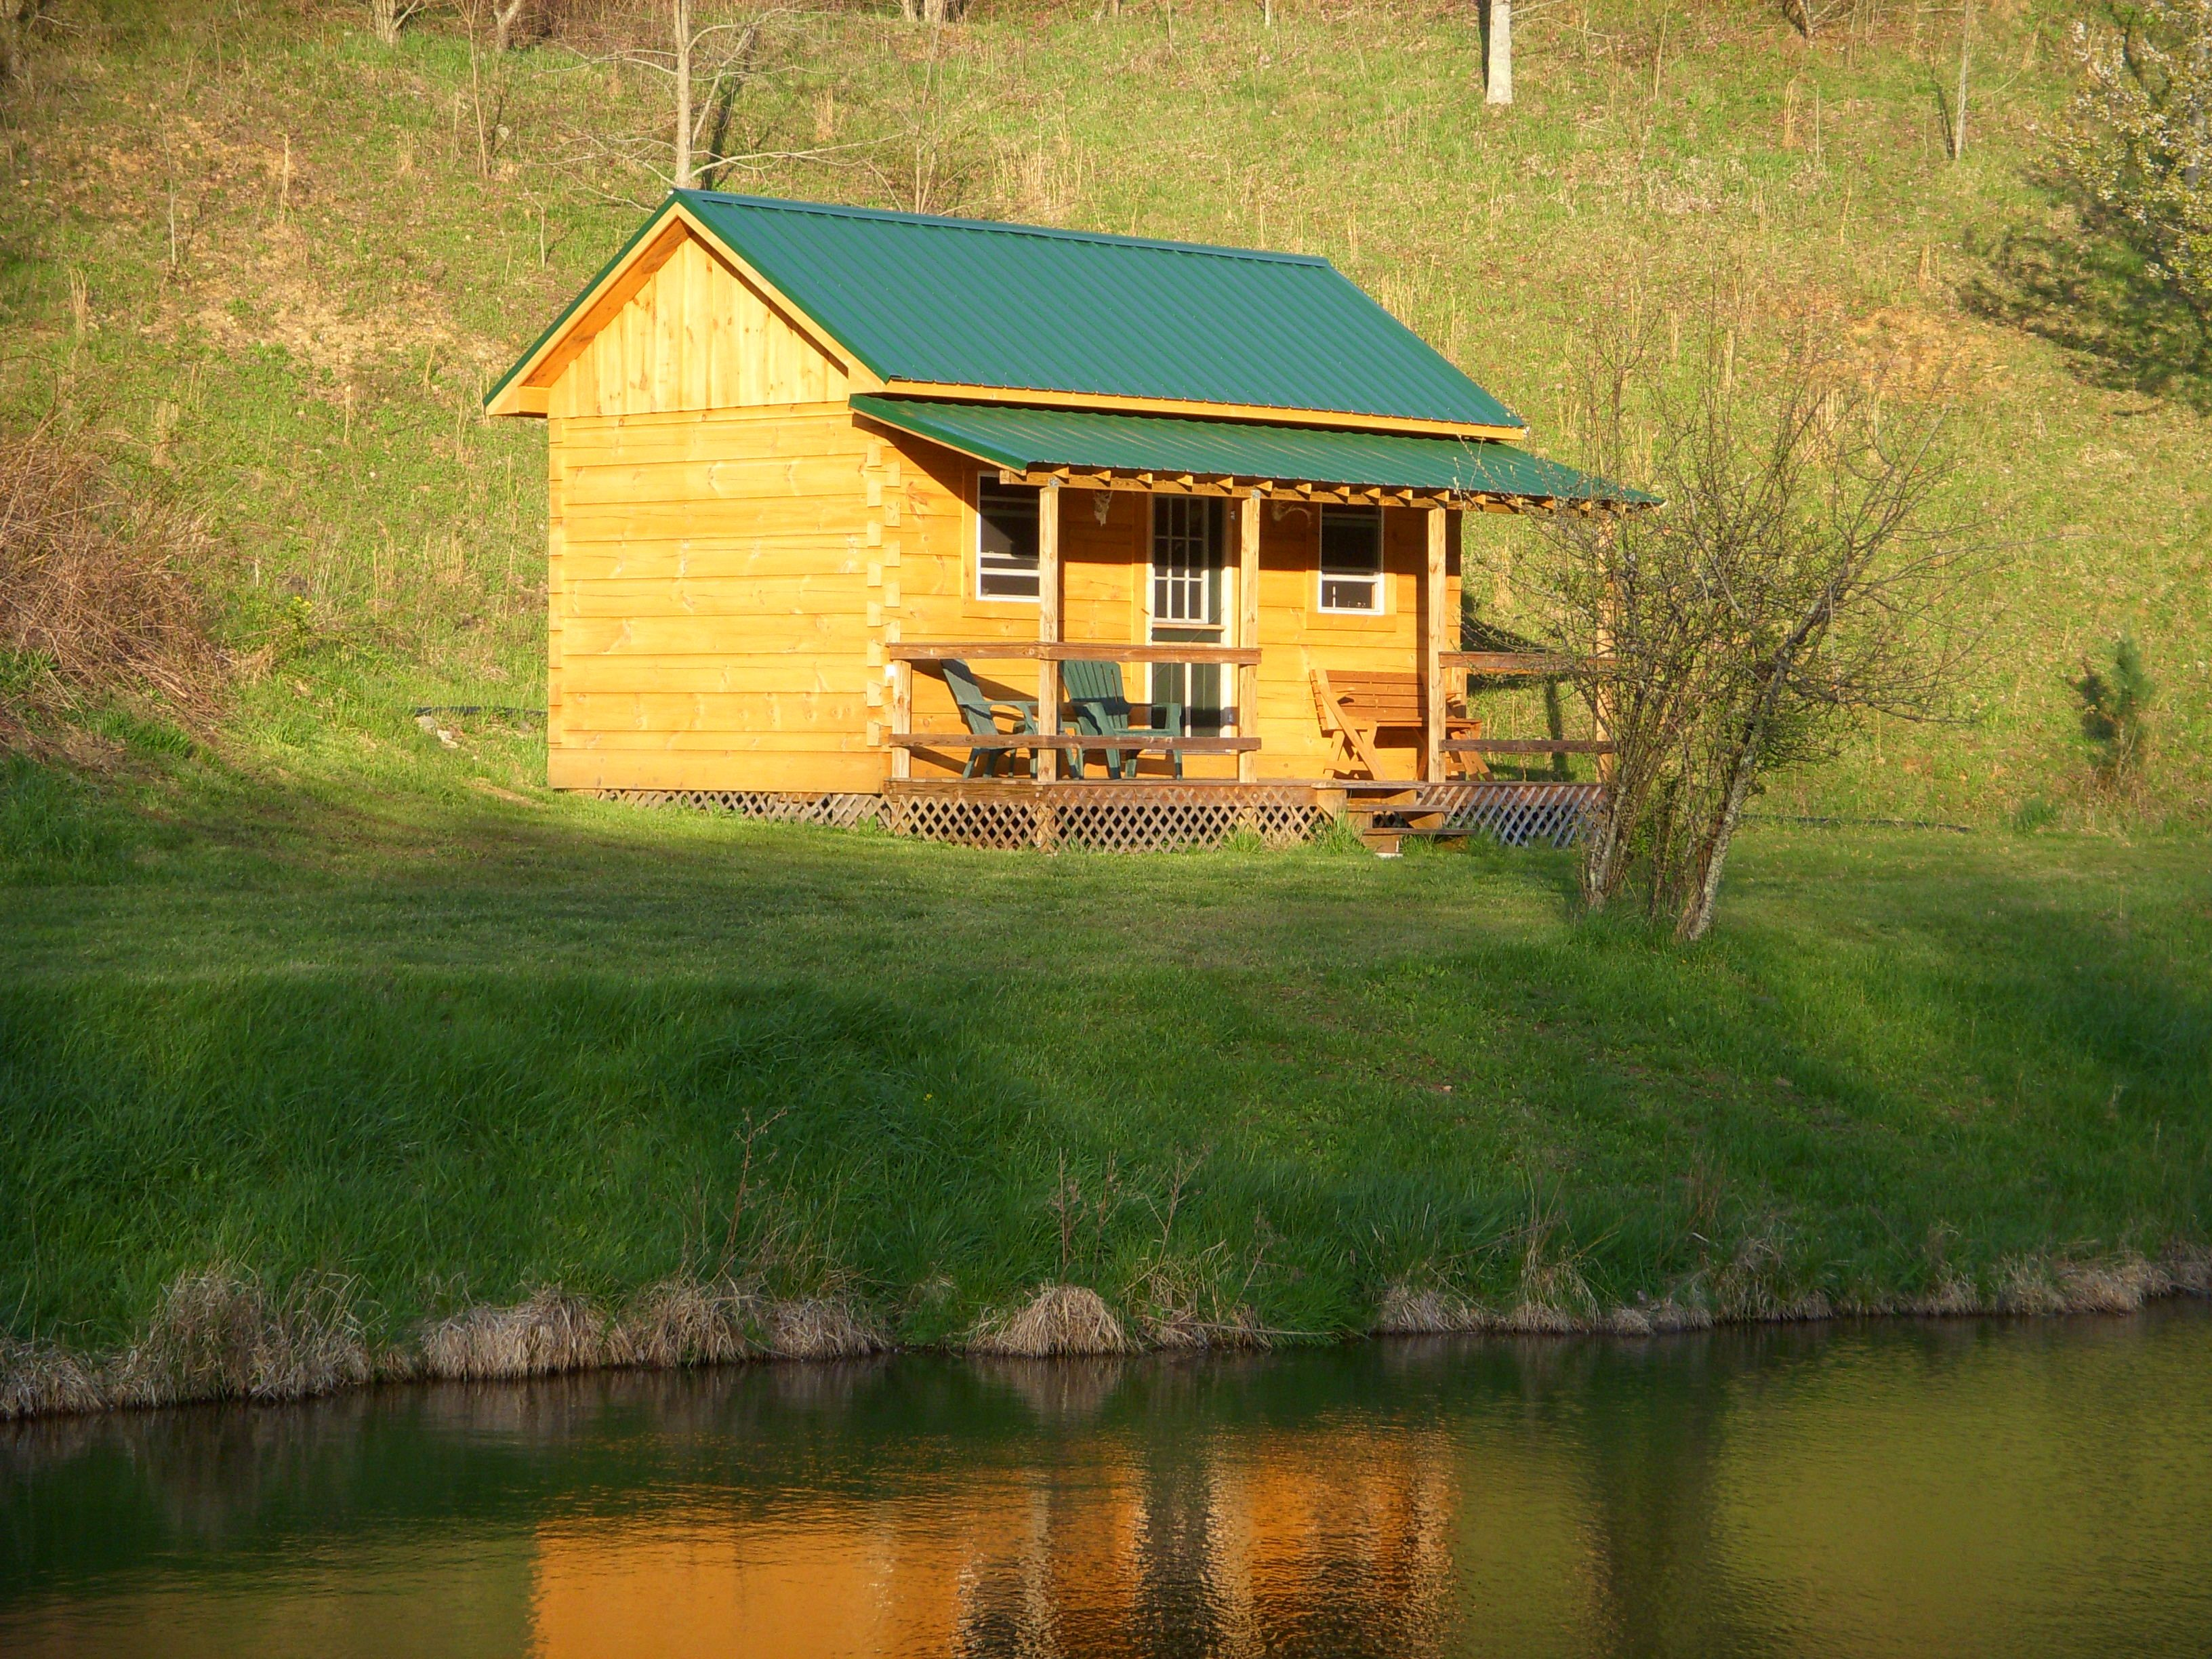 Marvelous photograph of Small cabin by the lake !!!Uncle Tom's cabin (by the lake)!!! Pin  with #AE8B1D color and 3264x2448 pixels